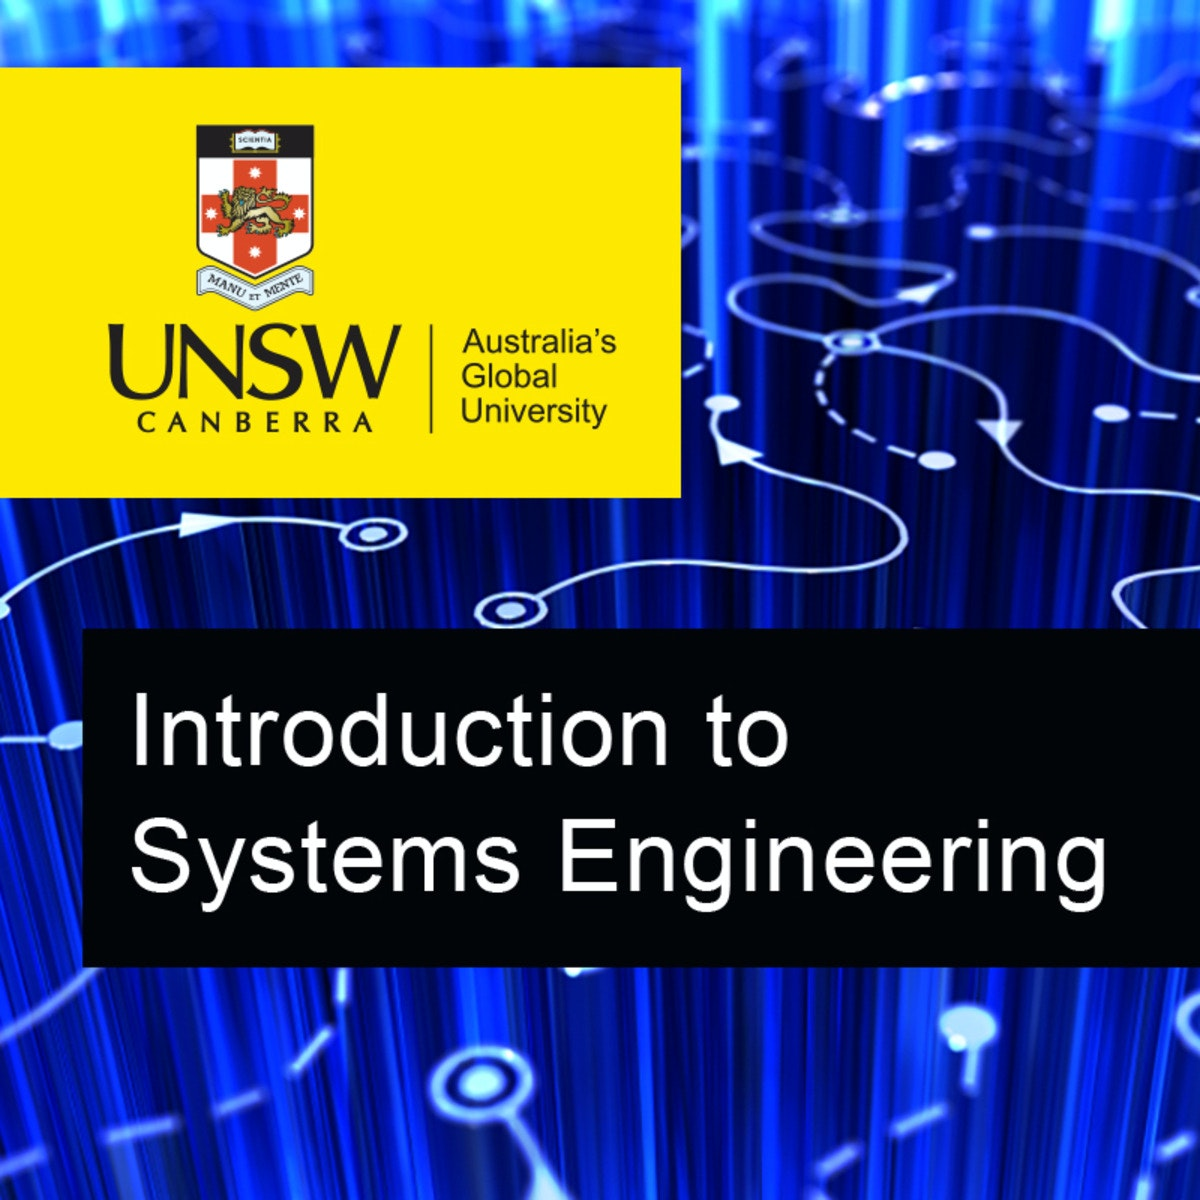 an introduction to systems engineering View notes - systems engineering fundamentals from informatio 650657 at johns hopkins introduction systems engineering fundamentals systems engineering fundamentals january 2001 supplementary.